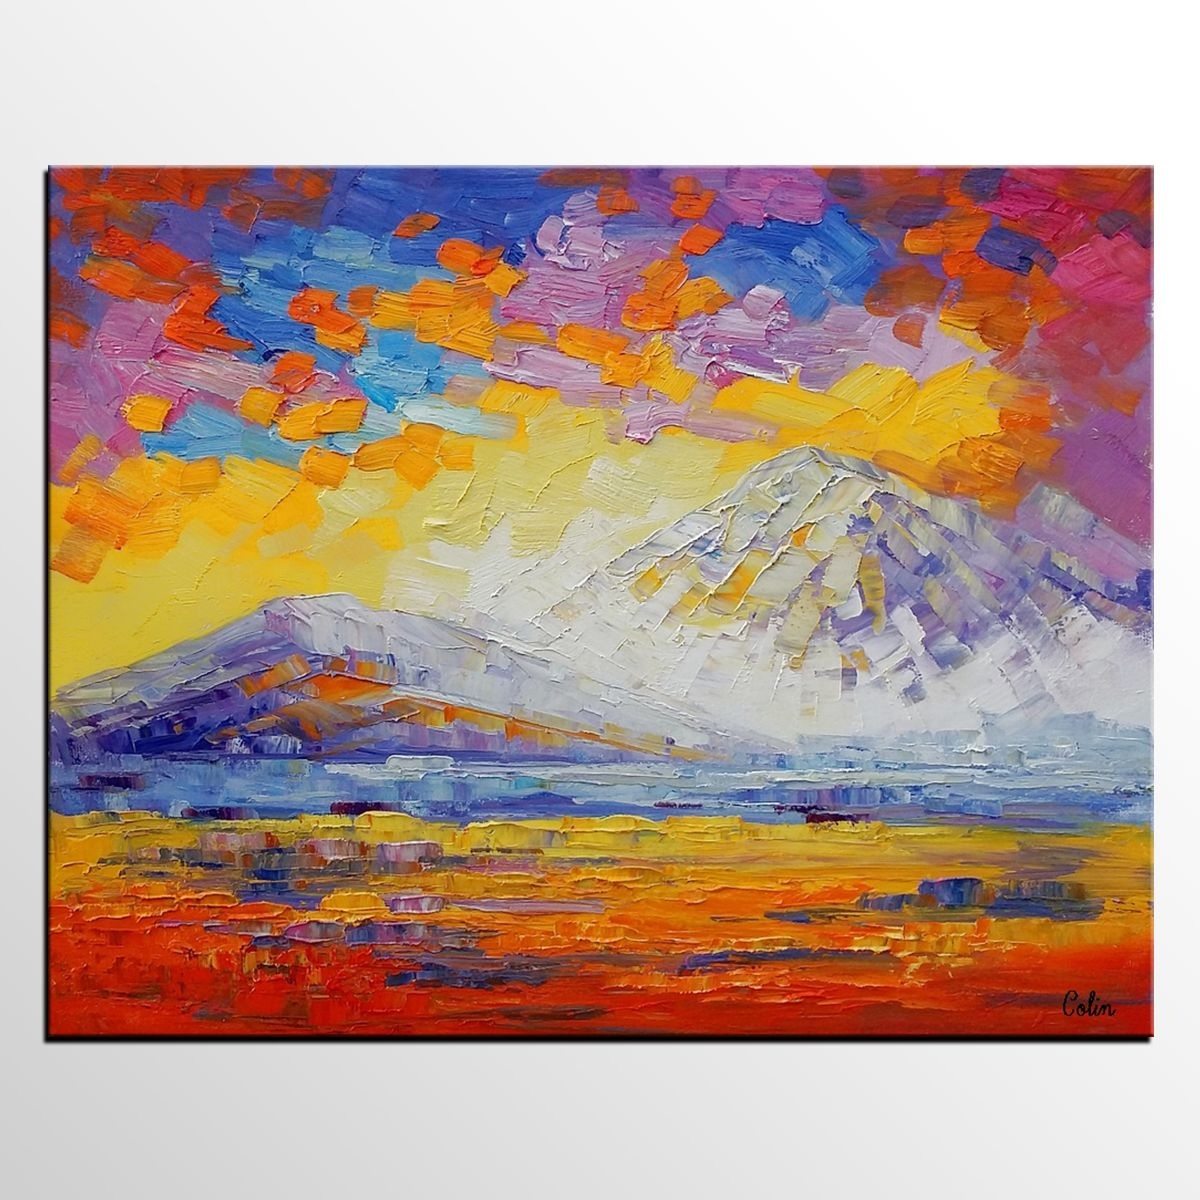 Original Painting, Landscape Painting, Oil Painting, Abstract Painting,  Large Art, Canvas